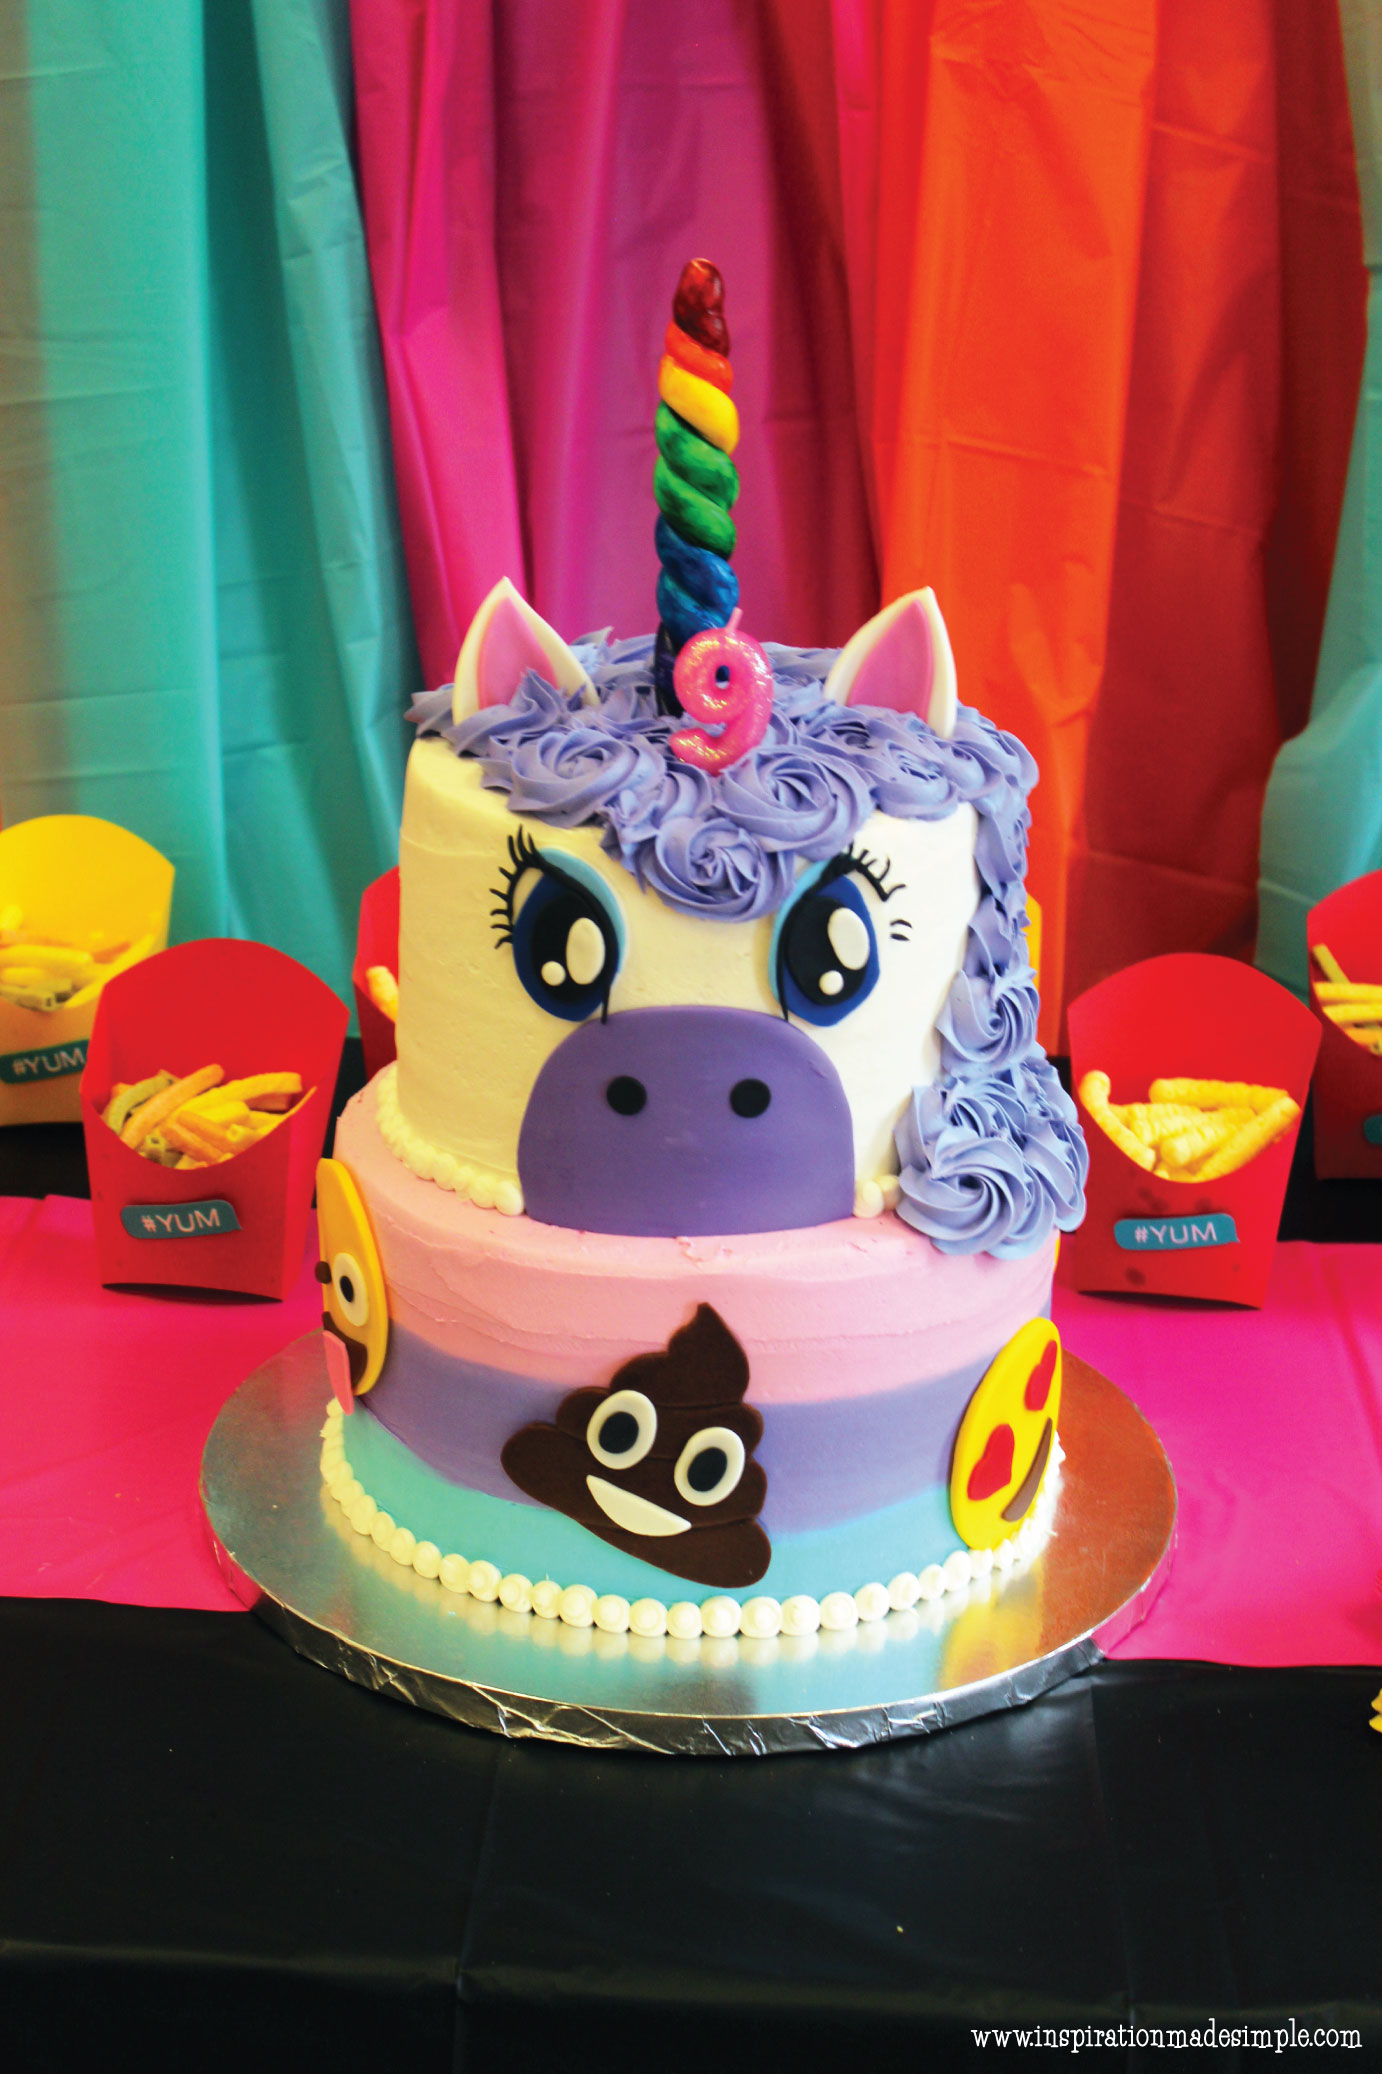 Emoji Unicorn Cake for an Emoji Paint and Sip Party for Kids